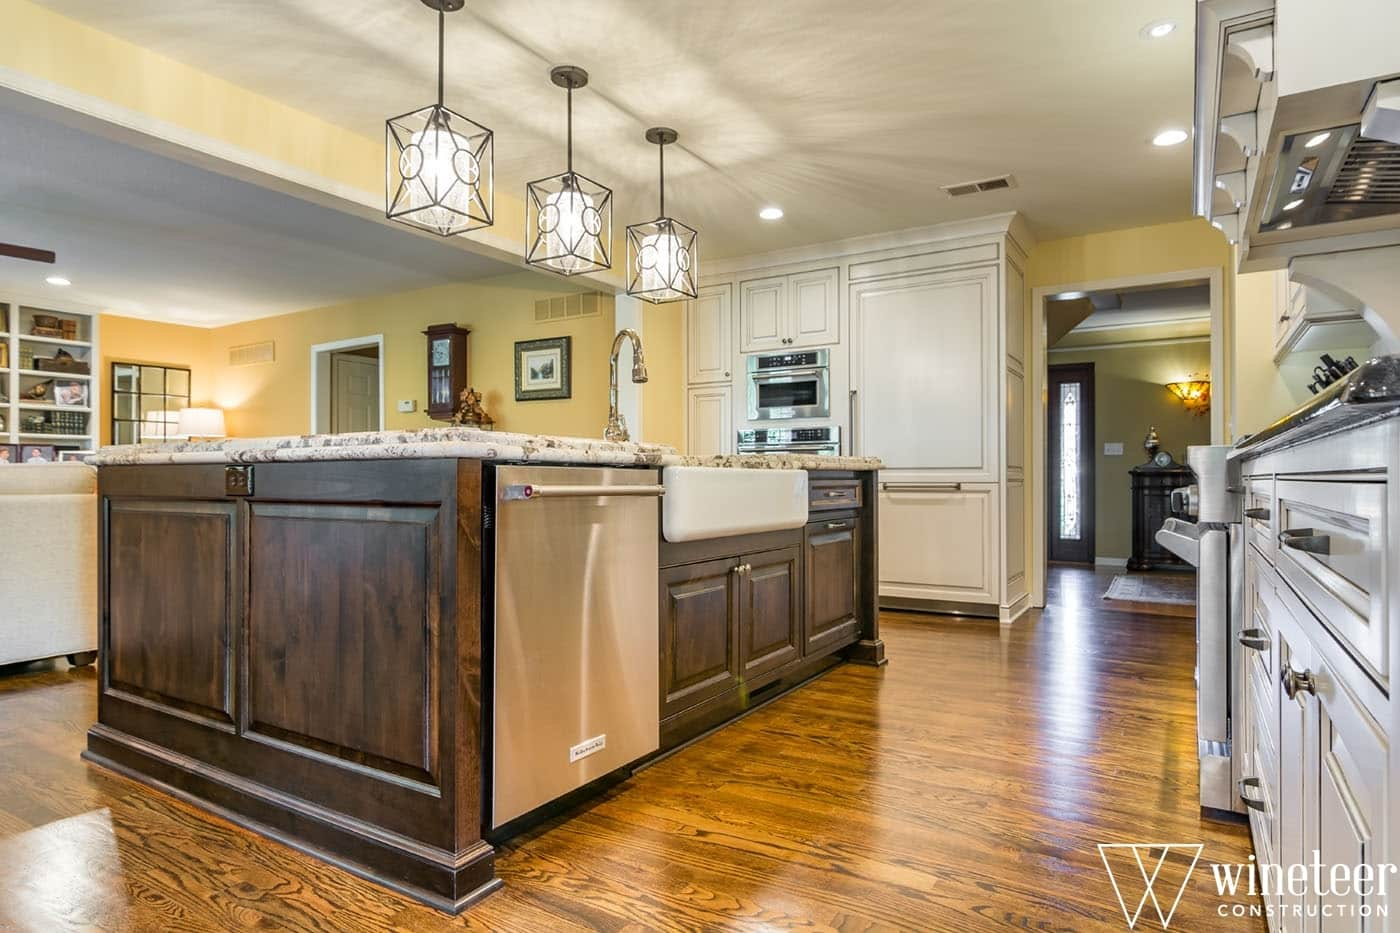 image on page for  / perceived to contain Flooring, Appliance, Electrical Device, Oven, Floor, Indoors, Interior Design, Kitchen, Room, Hardwood, Wood, Furniture, Lighting, Dining Room, Architecture, Building